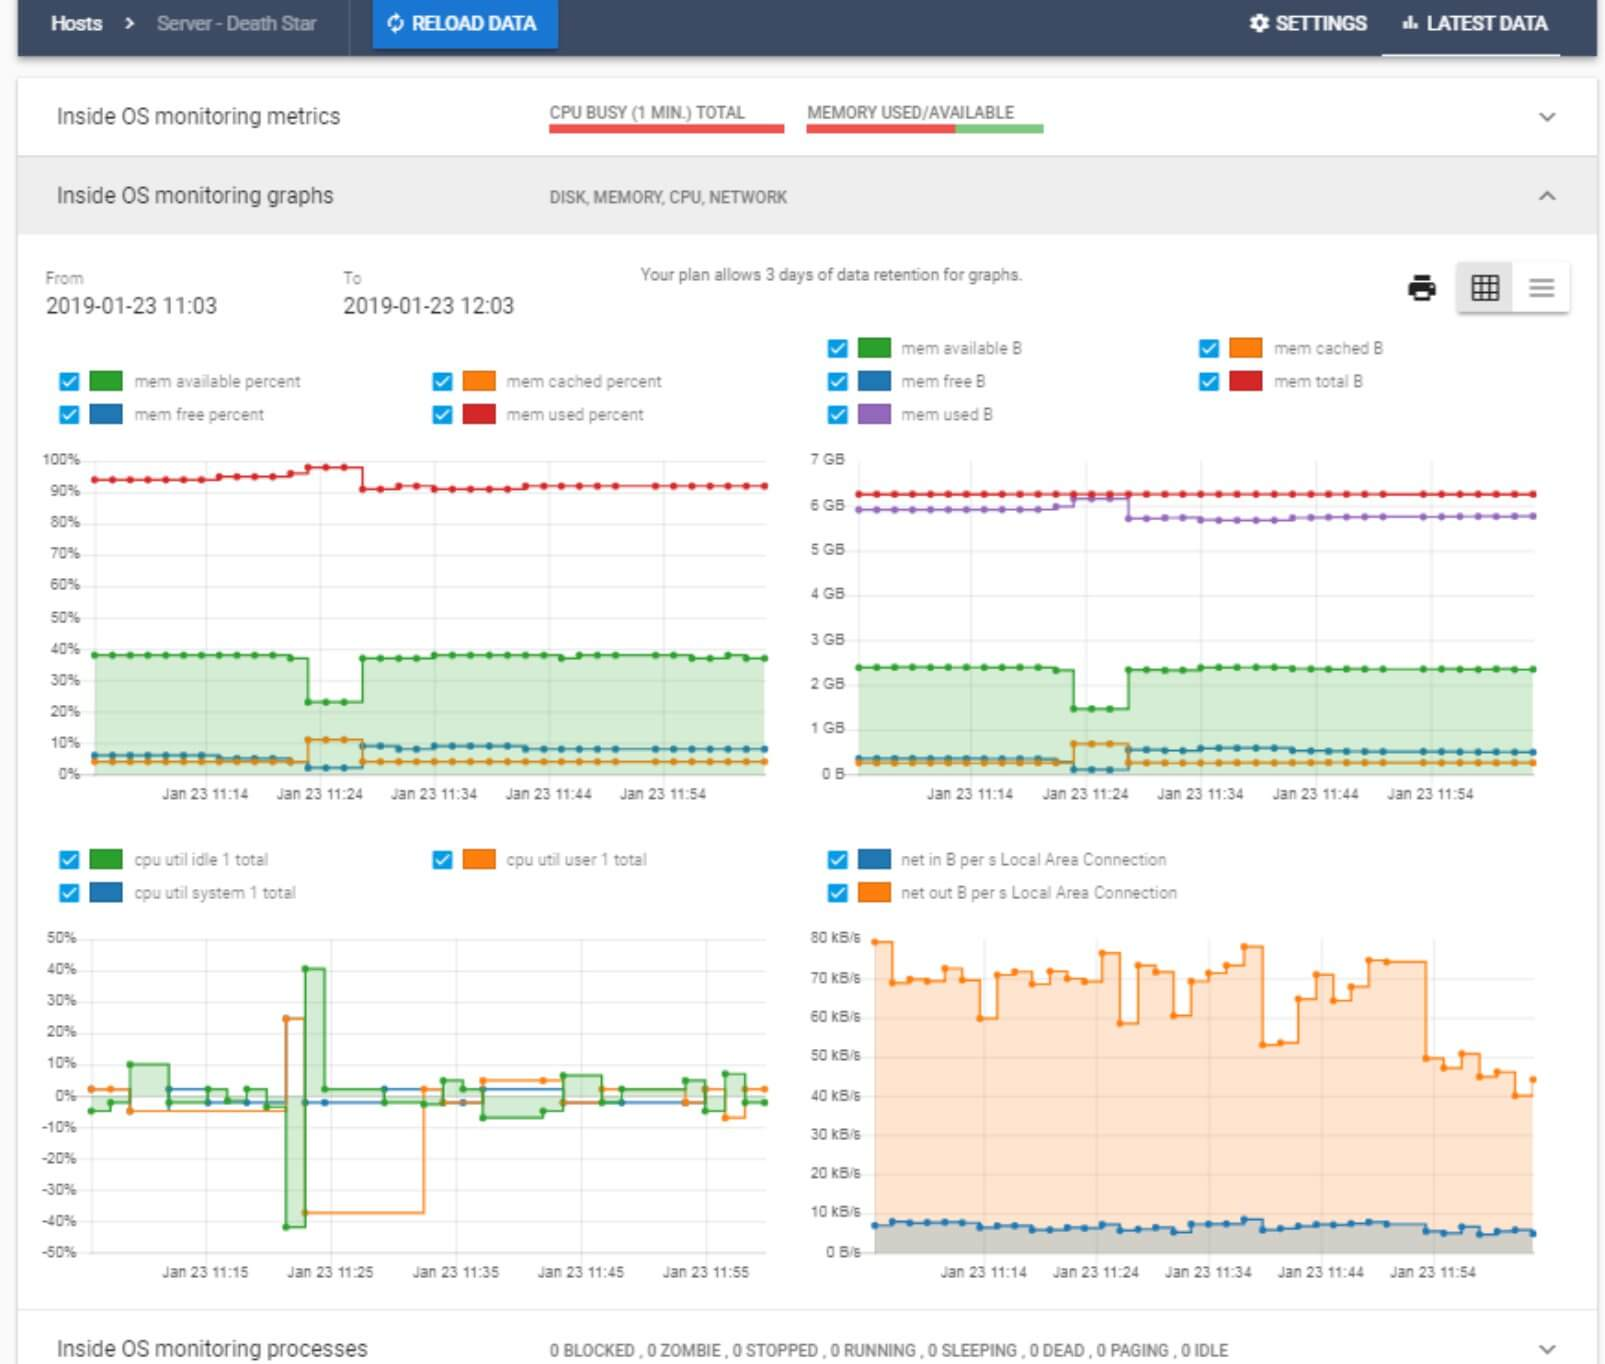 In-depth graphs and insights into all server monitoring metrics